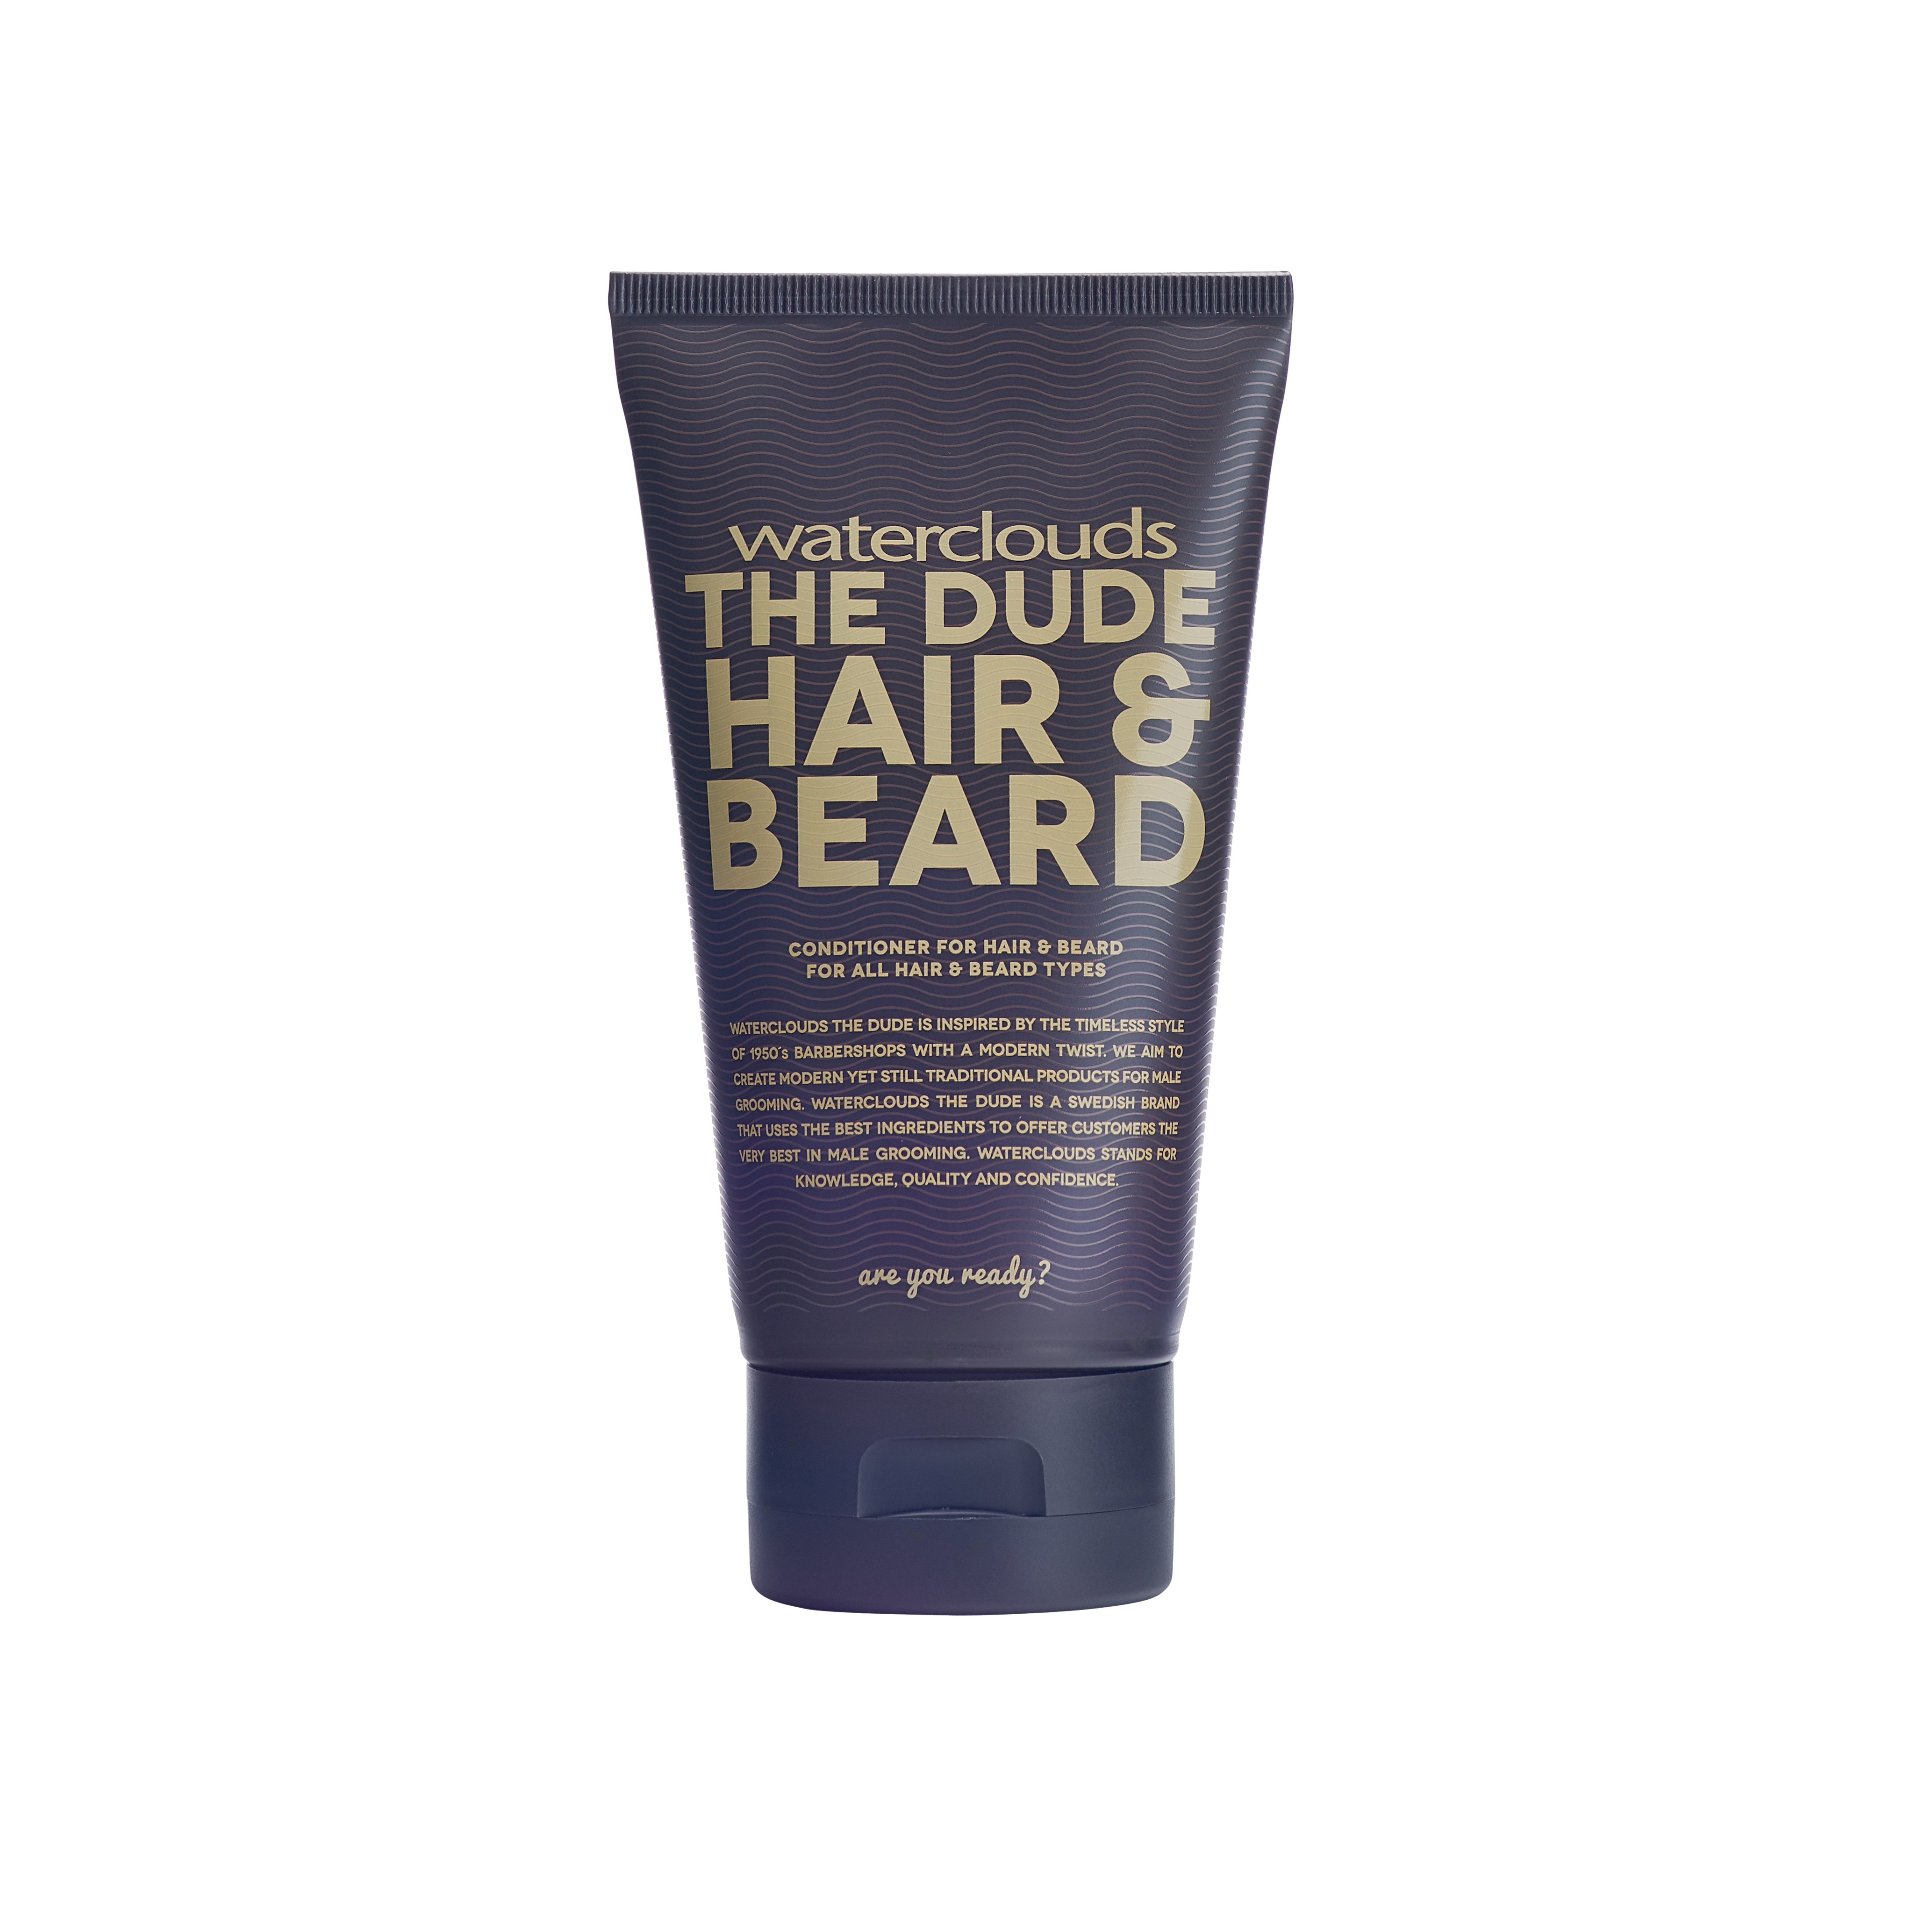 Hair & Beard Conditioner 150ml – Waterclouds The Dude